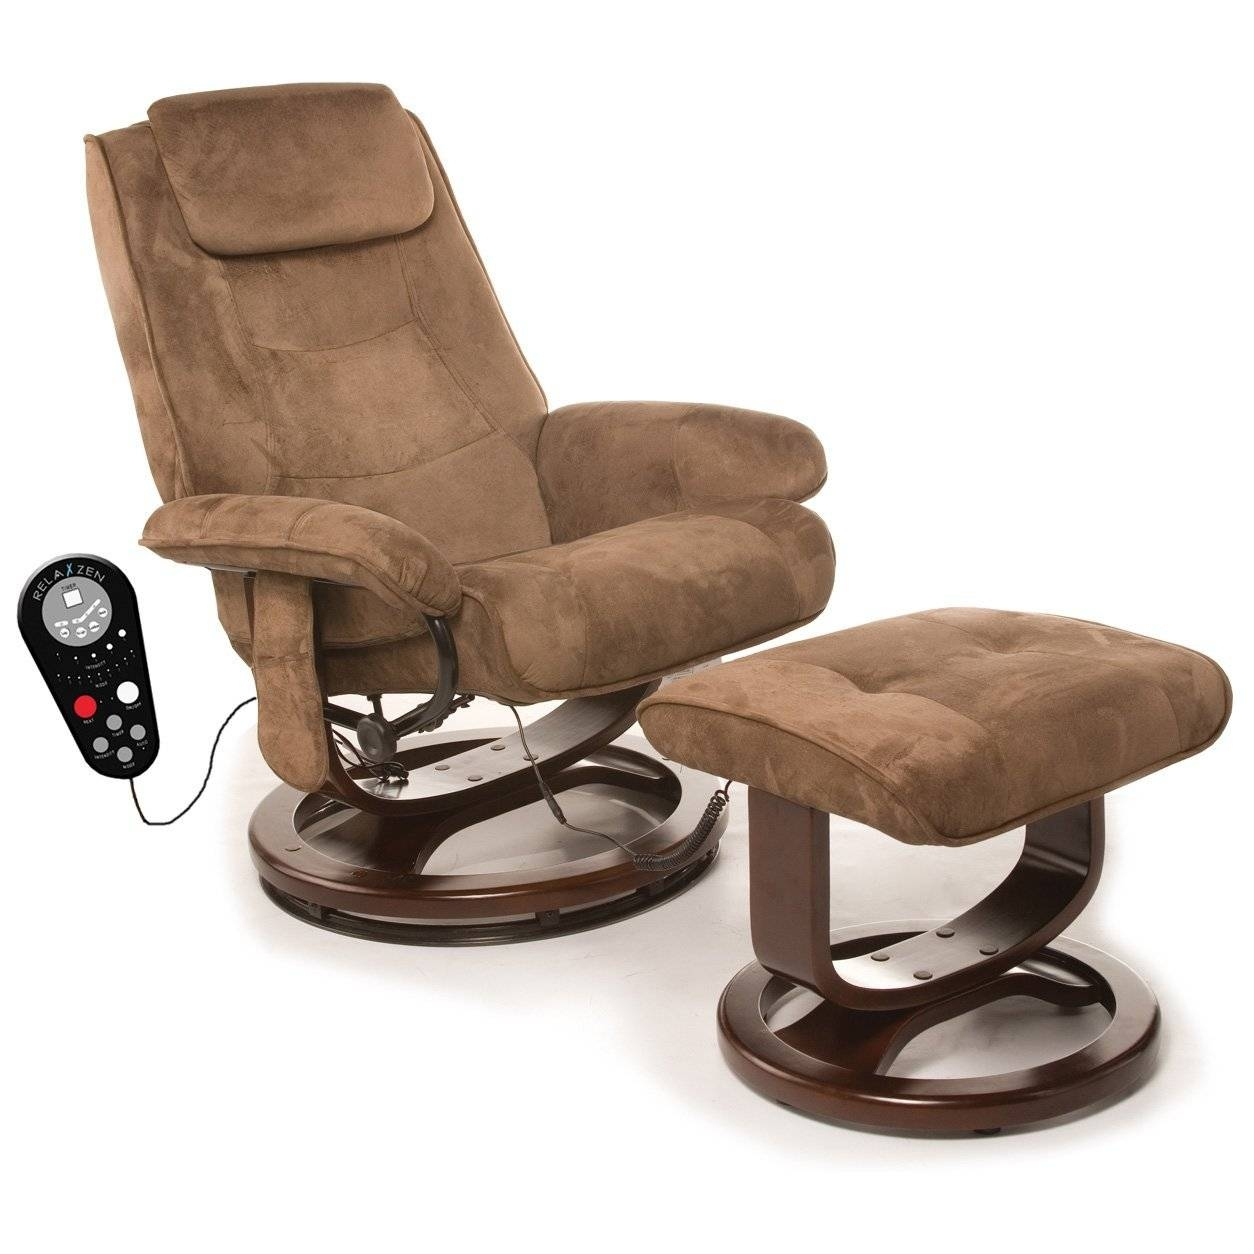 Top 10 Best Heated Vibrating Chairs In 2017 Reviews inside Ergonomic Sofas and Chairs (Image 26 of 30)